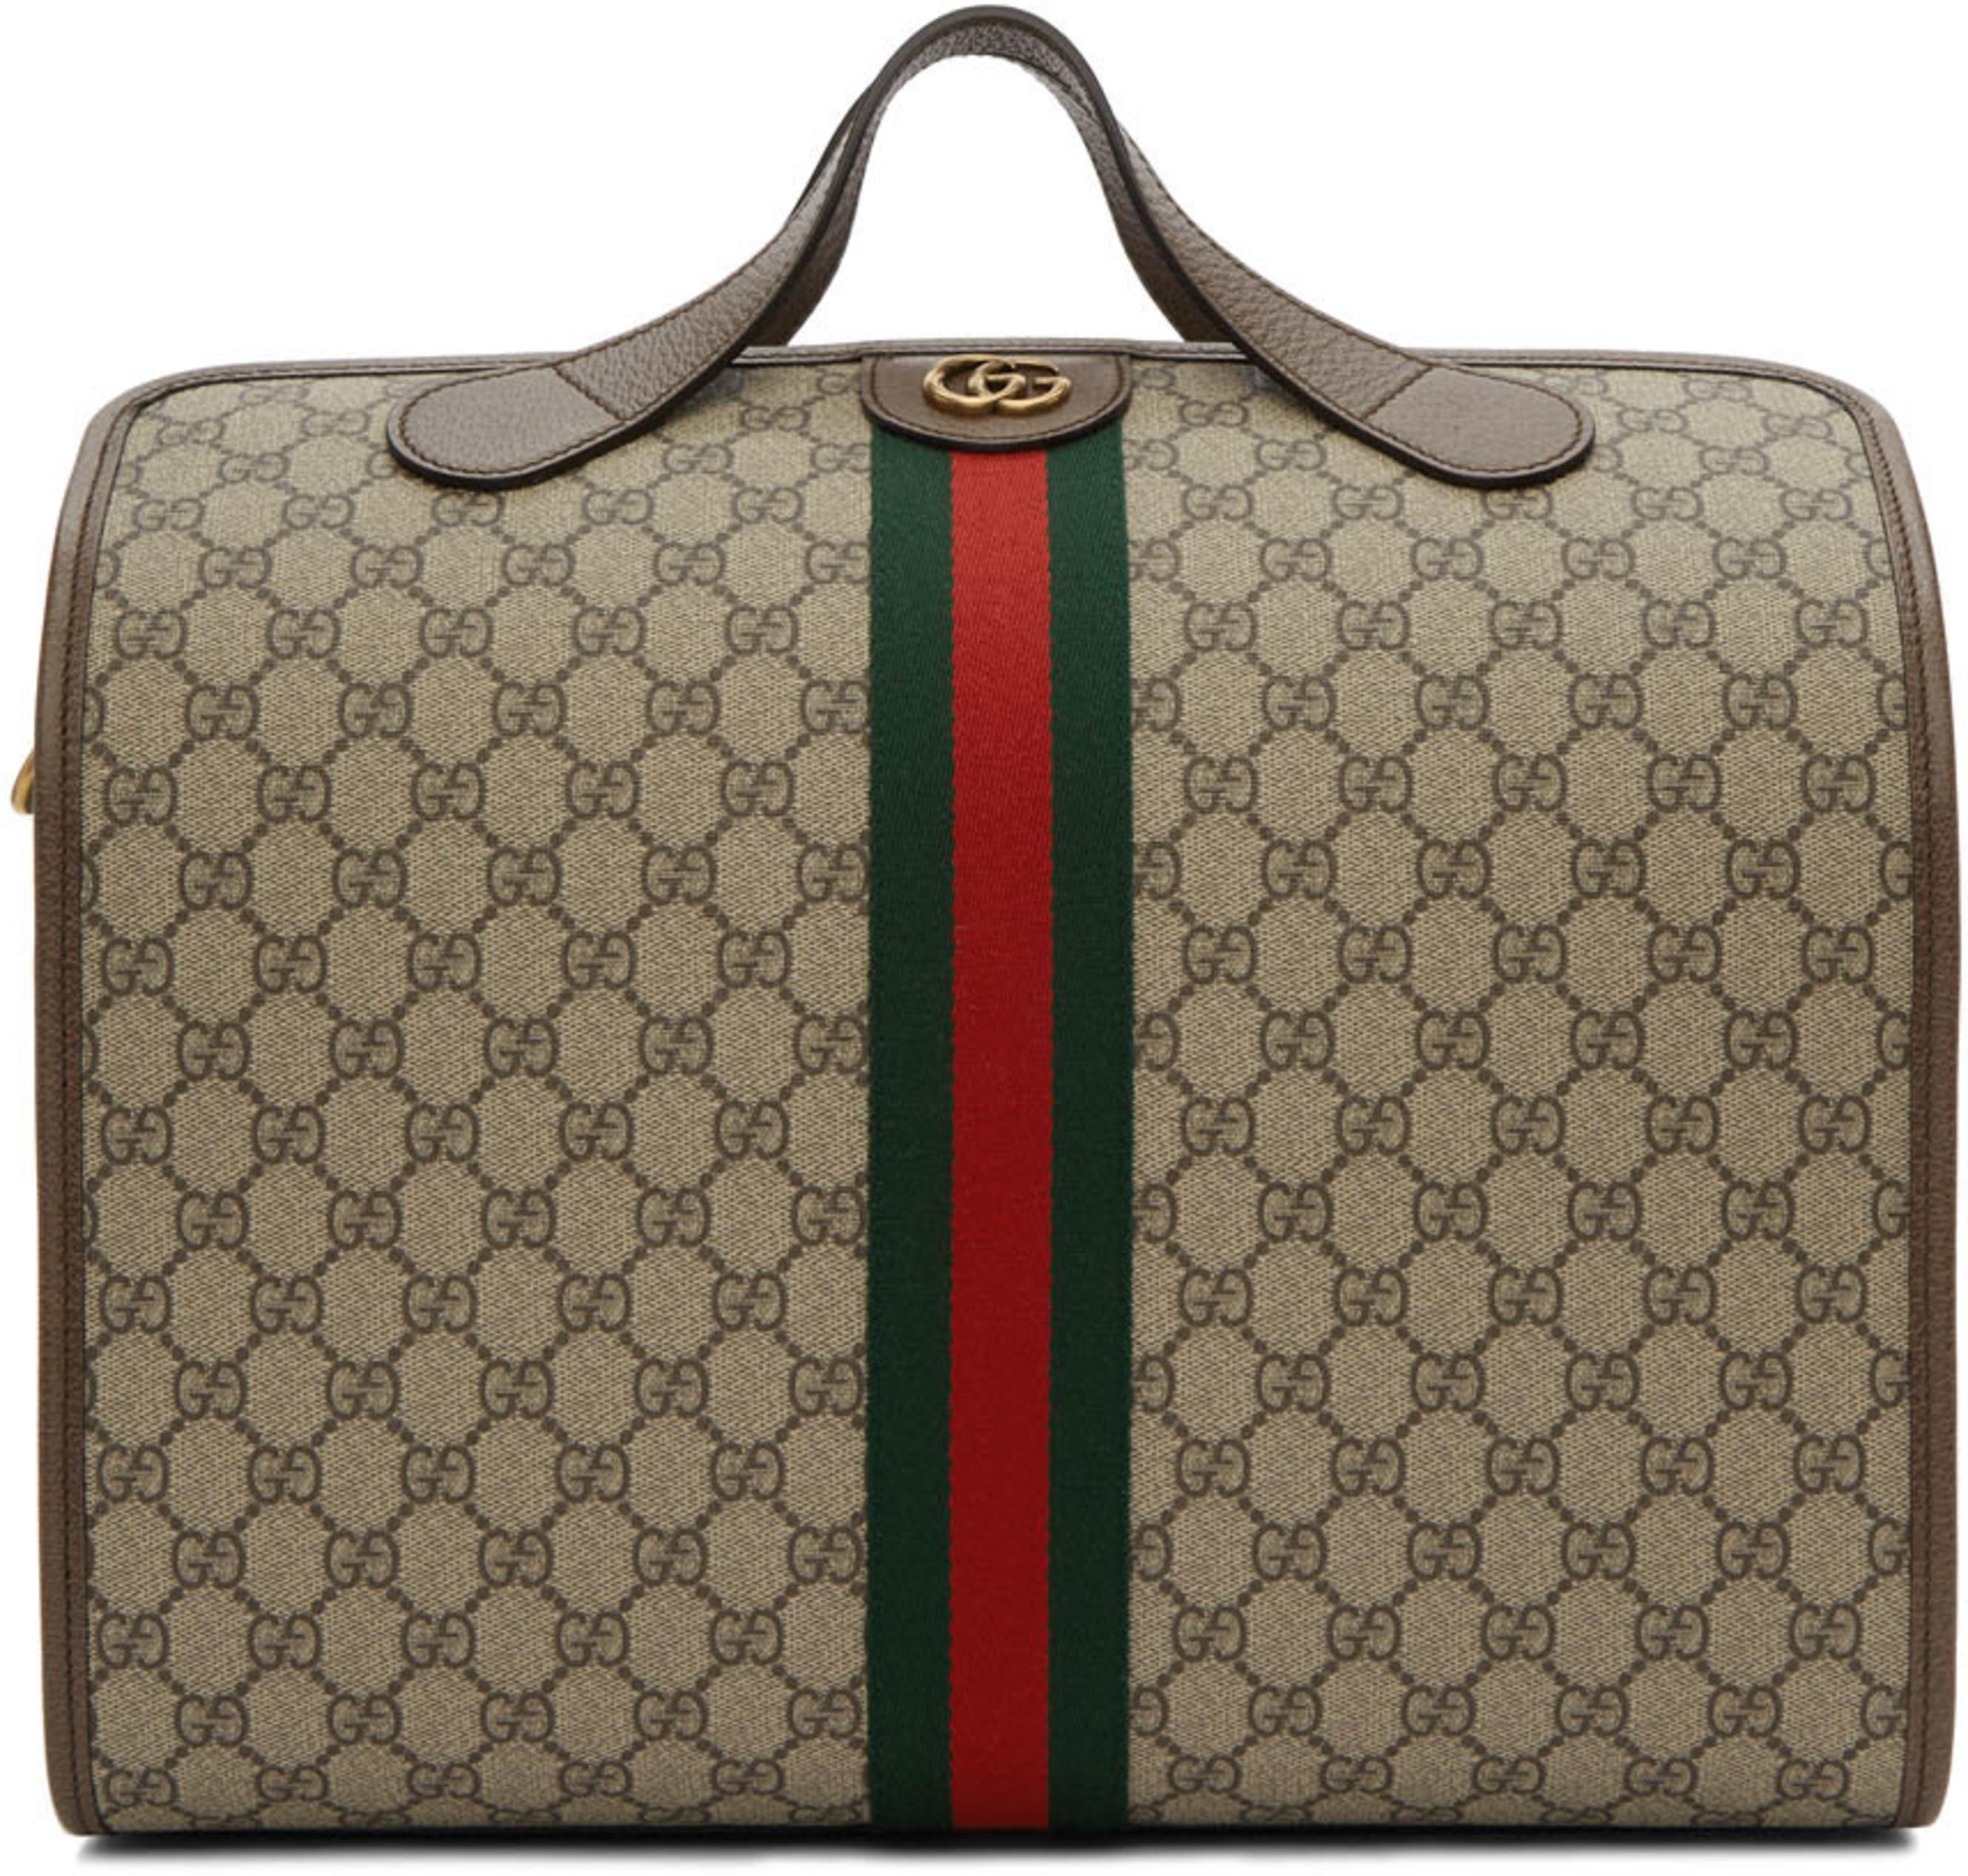 ac101b618c4 Gucci bags for Men